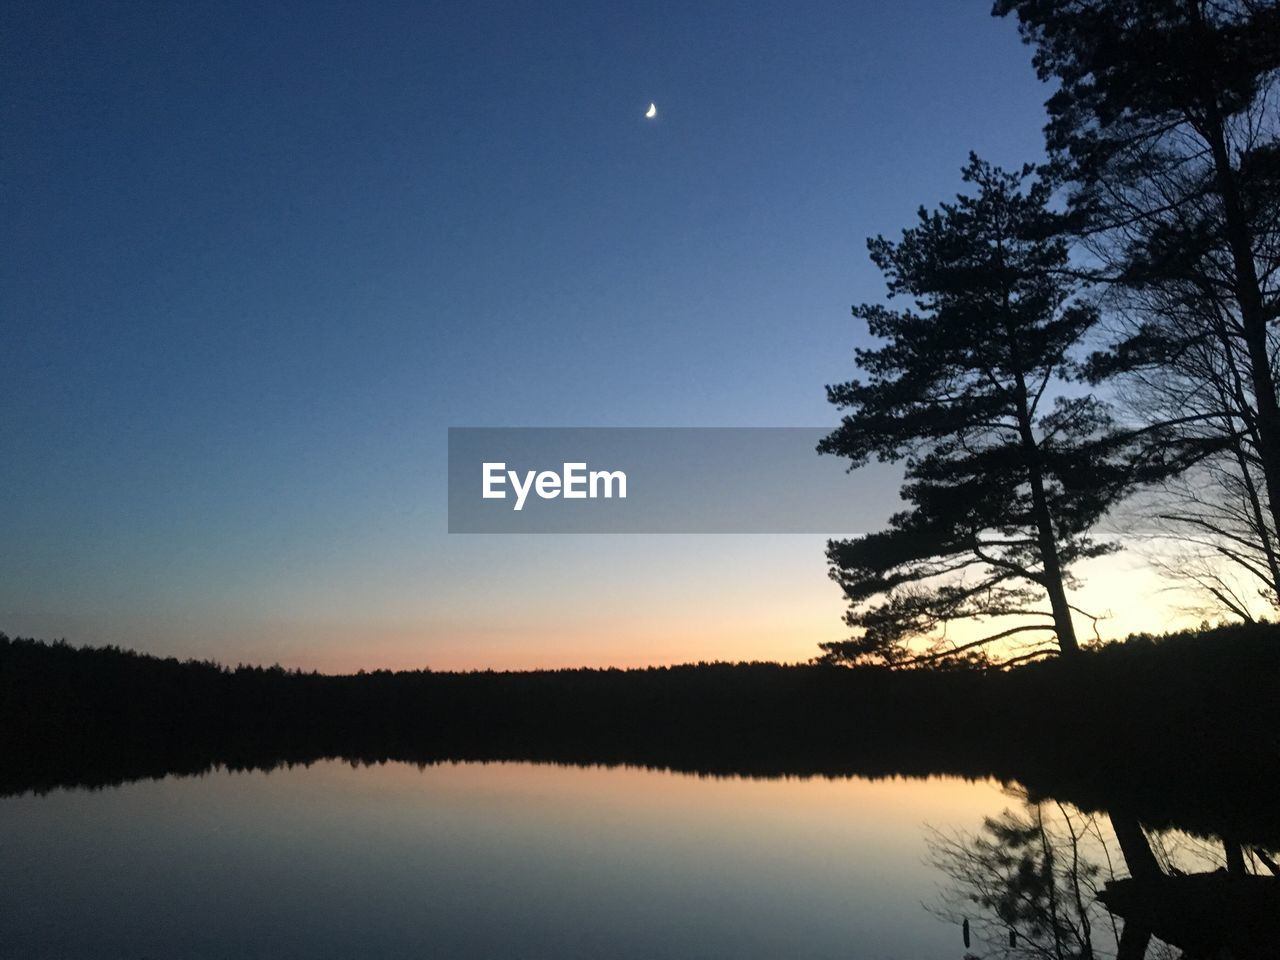 moon, nature, beauty in nature, tree, tranquil scene, tranquility, scenics, sky, reflection, idyllic, silhouette, no people, outdoors, clear sky, lake, sunset, water, night, half moon, astronomy